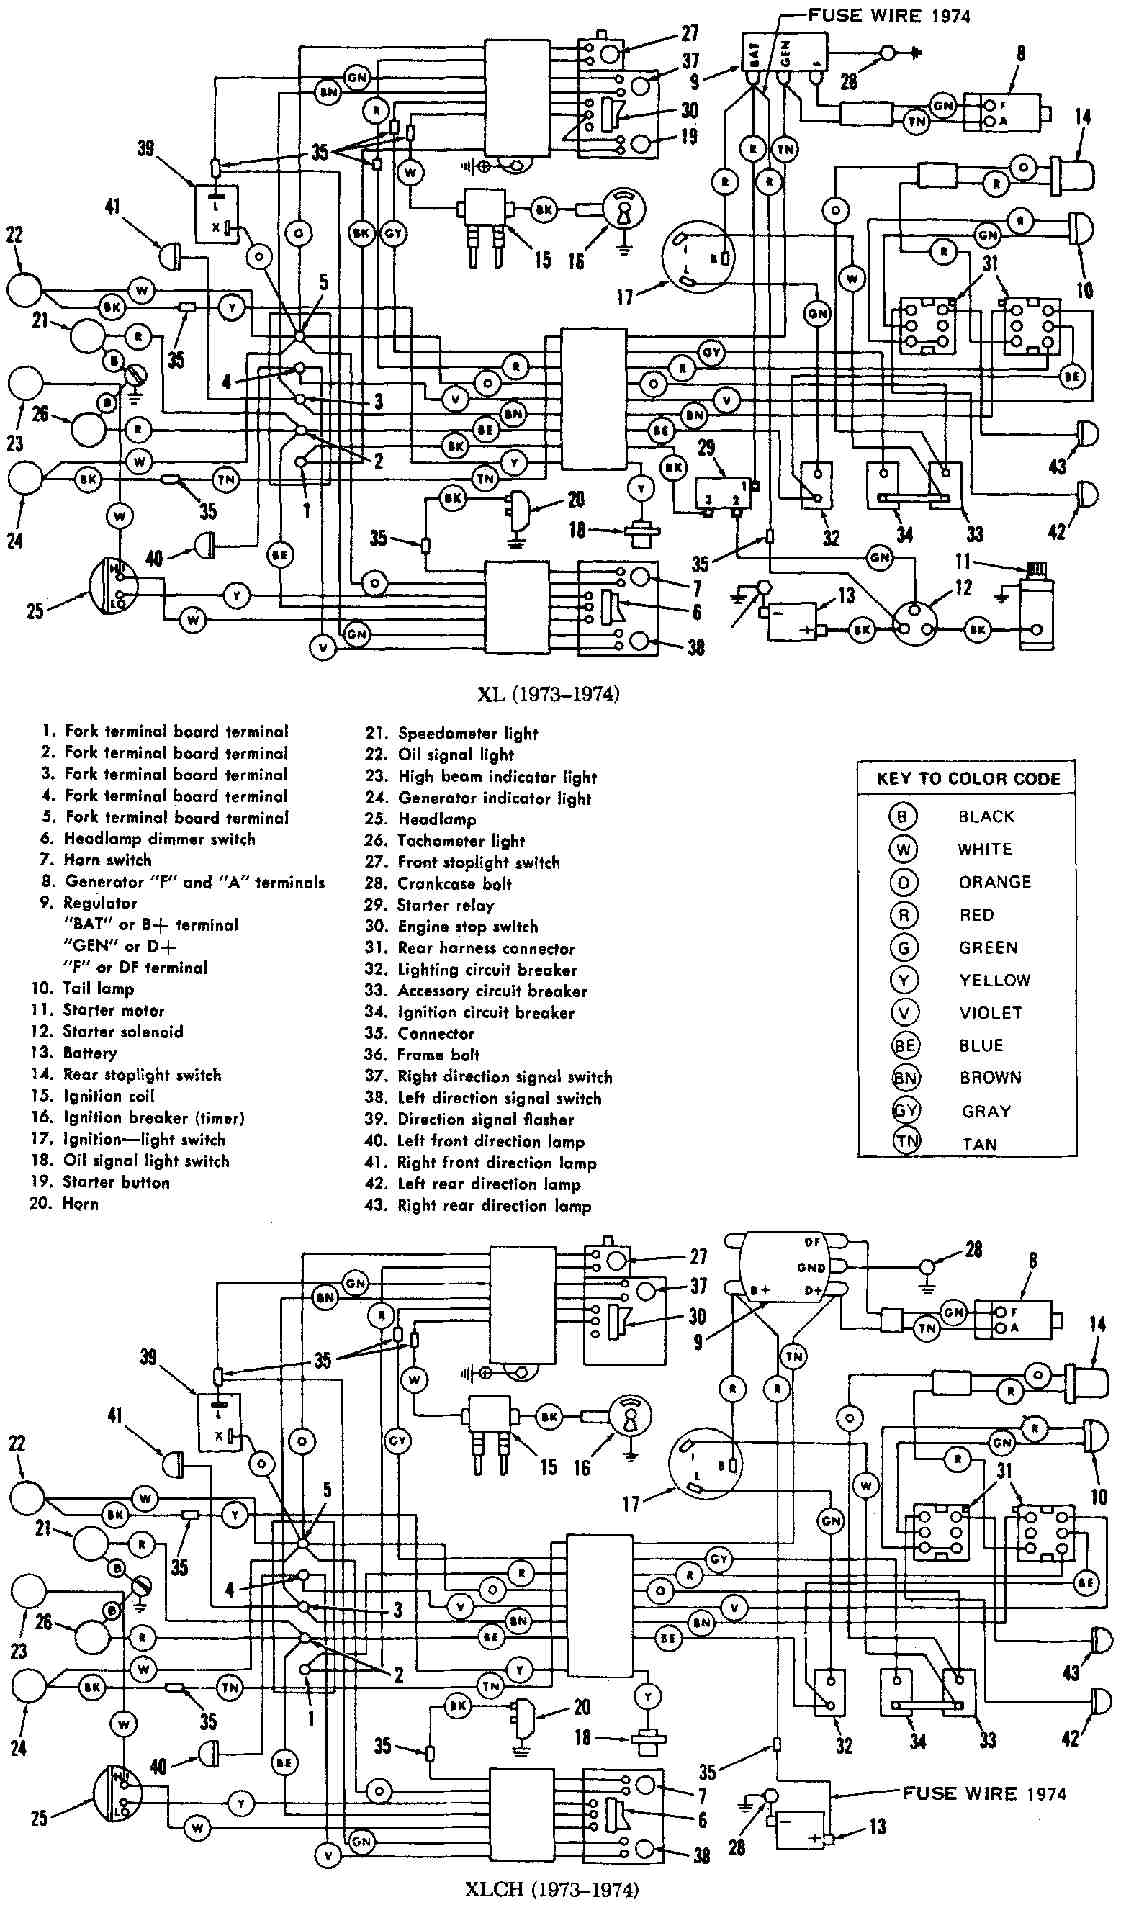 small resolution of 1981 harley wiring diagram wiring diagram detailed 2006 harley davidson street glide wiring diagram 1981